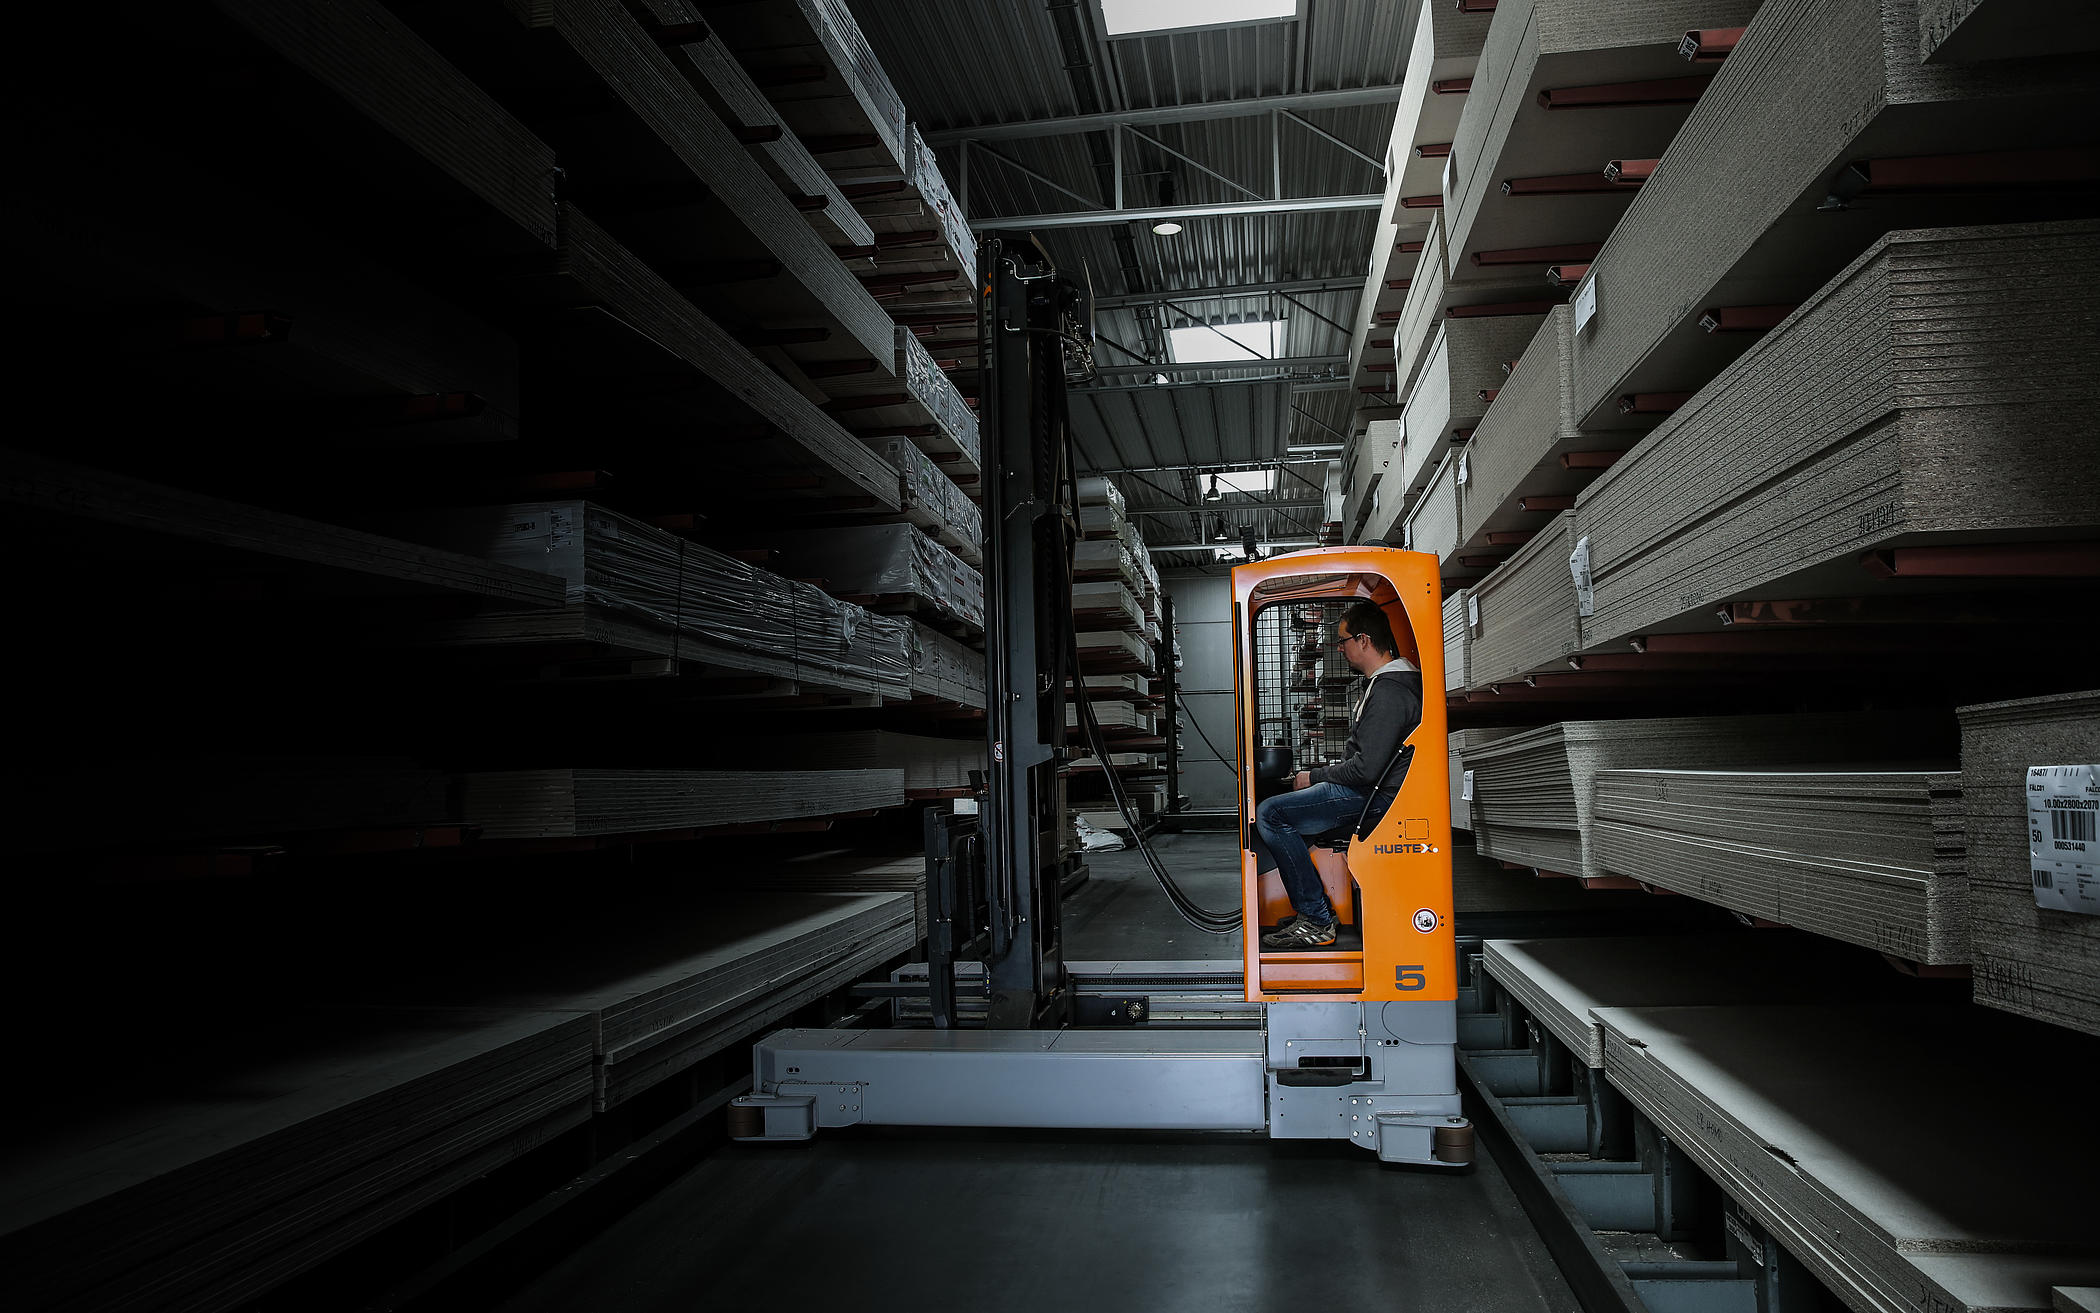 HUBTEX Electric Multidirectional Sideloaders during the order picking process